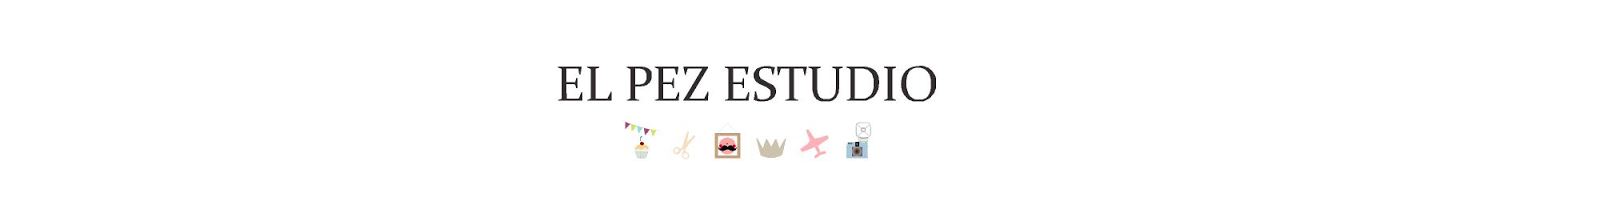 EL PEZ ESTUDIO